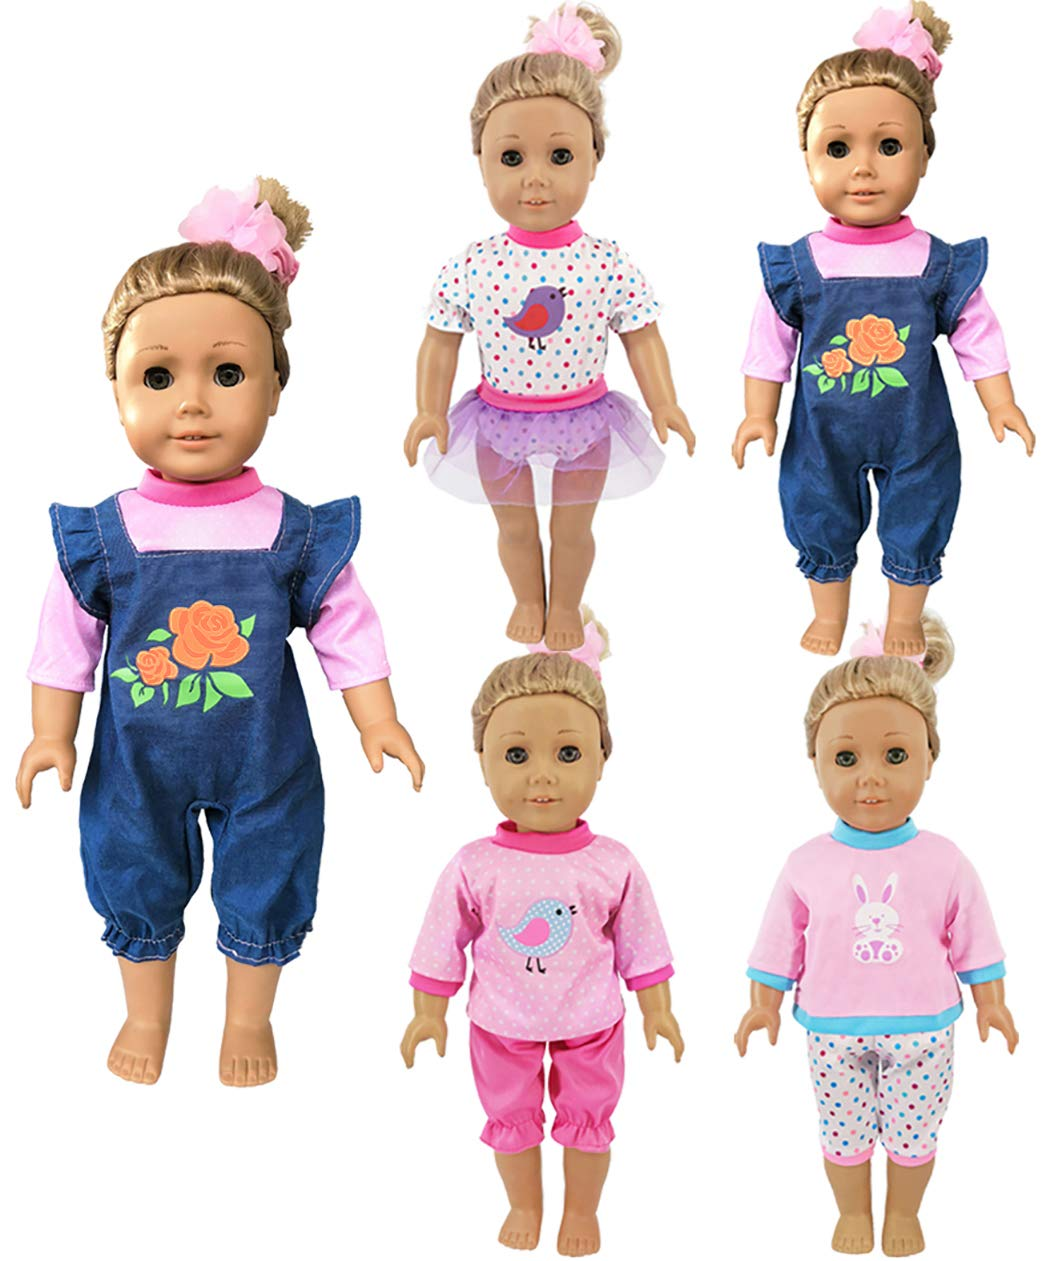 OG dolls//43cm New Born Baby Dolls//15 inch Bitty Baby Doll ebuddy 4 Sets Doll Clothes Include Top Skirt Jeans Pants Headband for 18 inch American Girl Dolls